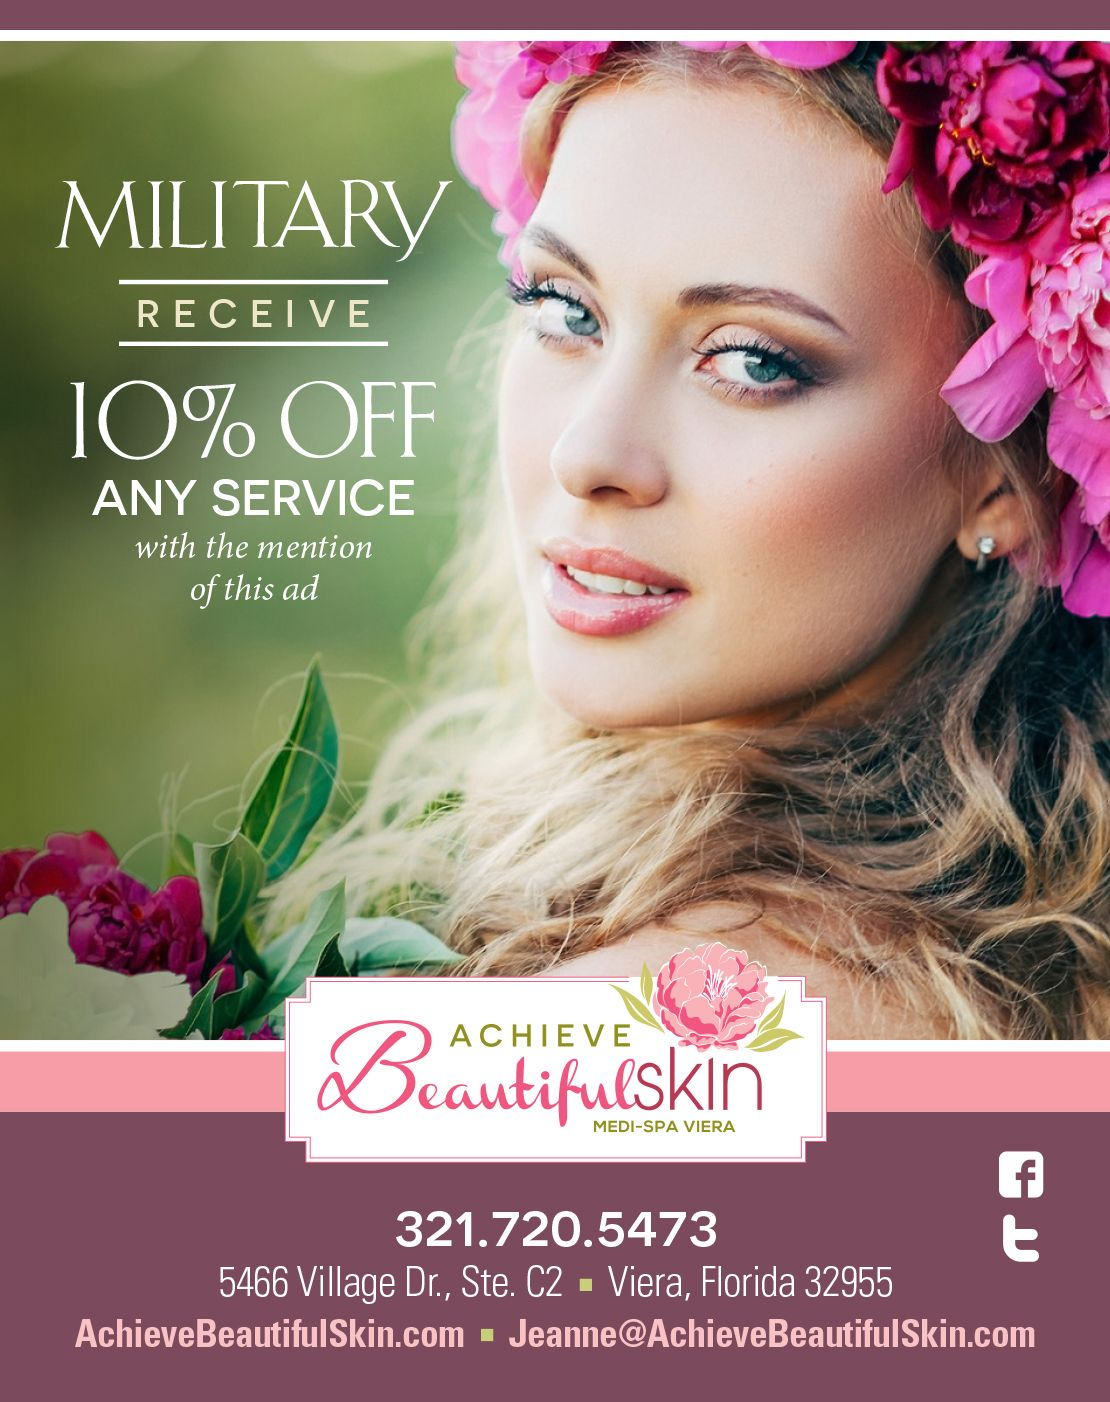 Achieve Beautiful Skin Medi-Spa Viera | Military Discount Network